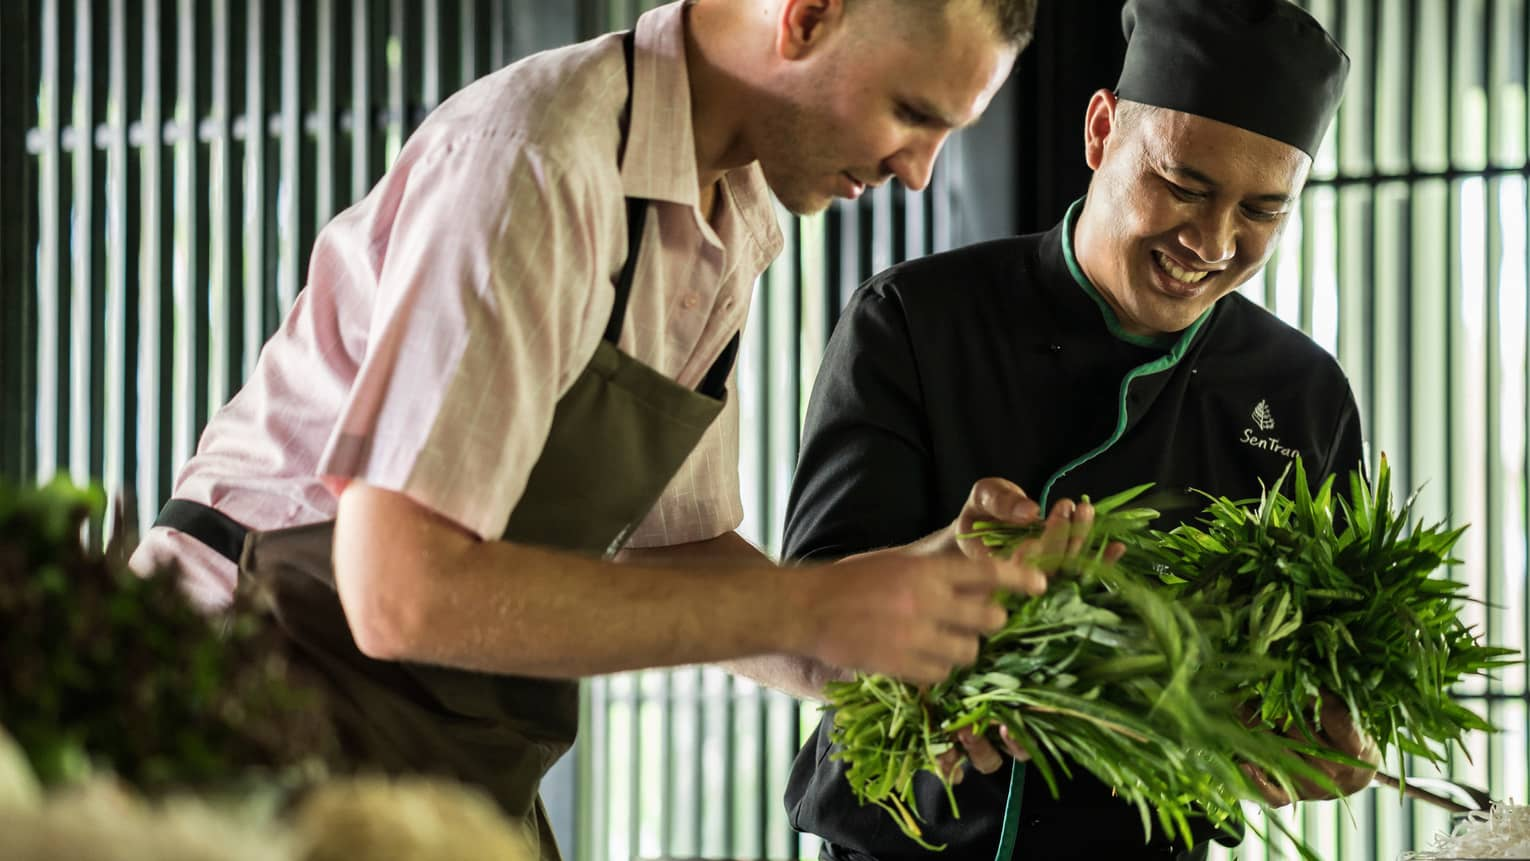 Smiling Chef Tran Van Sen holds greens, shows them to man in apron